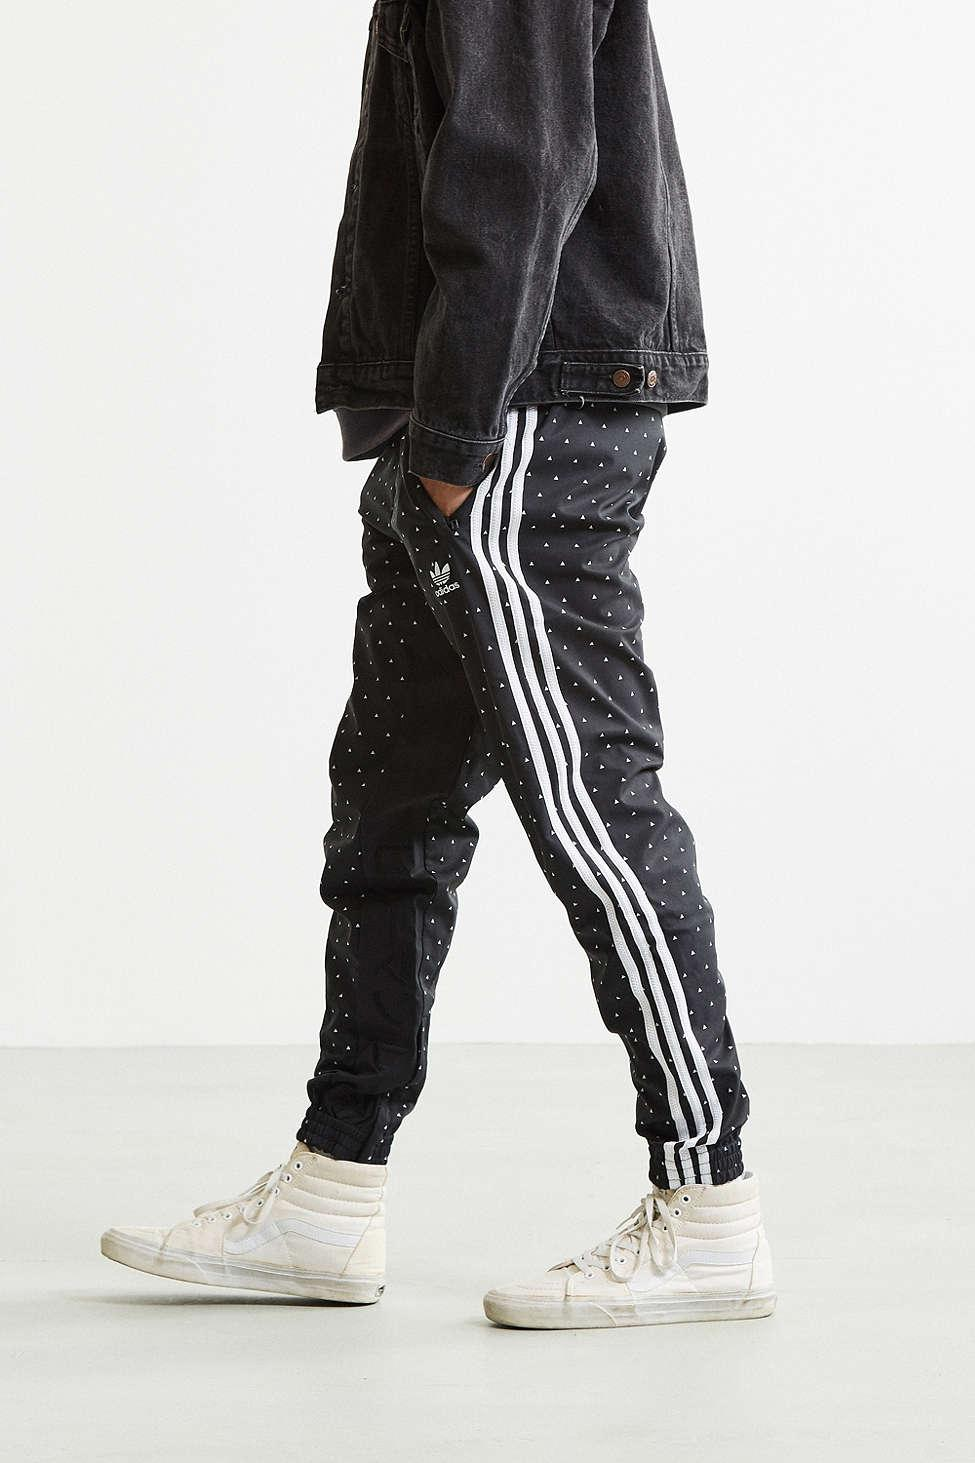 dcdee9c59a0e0 Lyst - adidas Originals X Pharrell Williams Carrot Fit Track Pant in Black  for Men